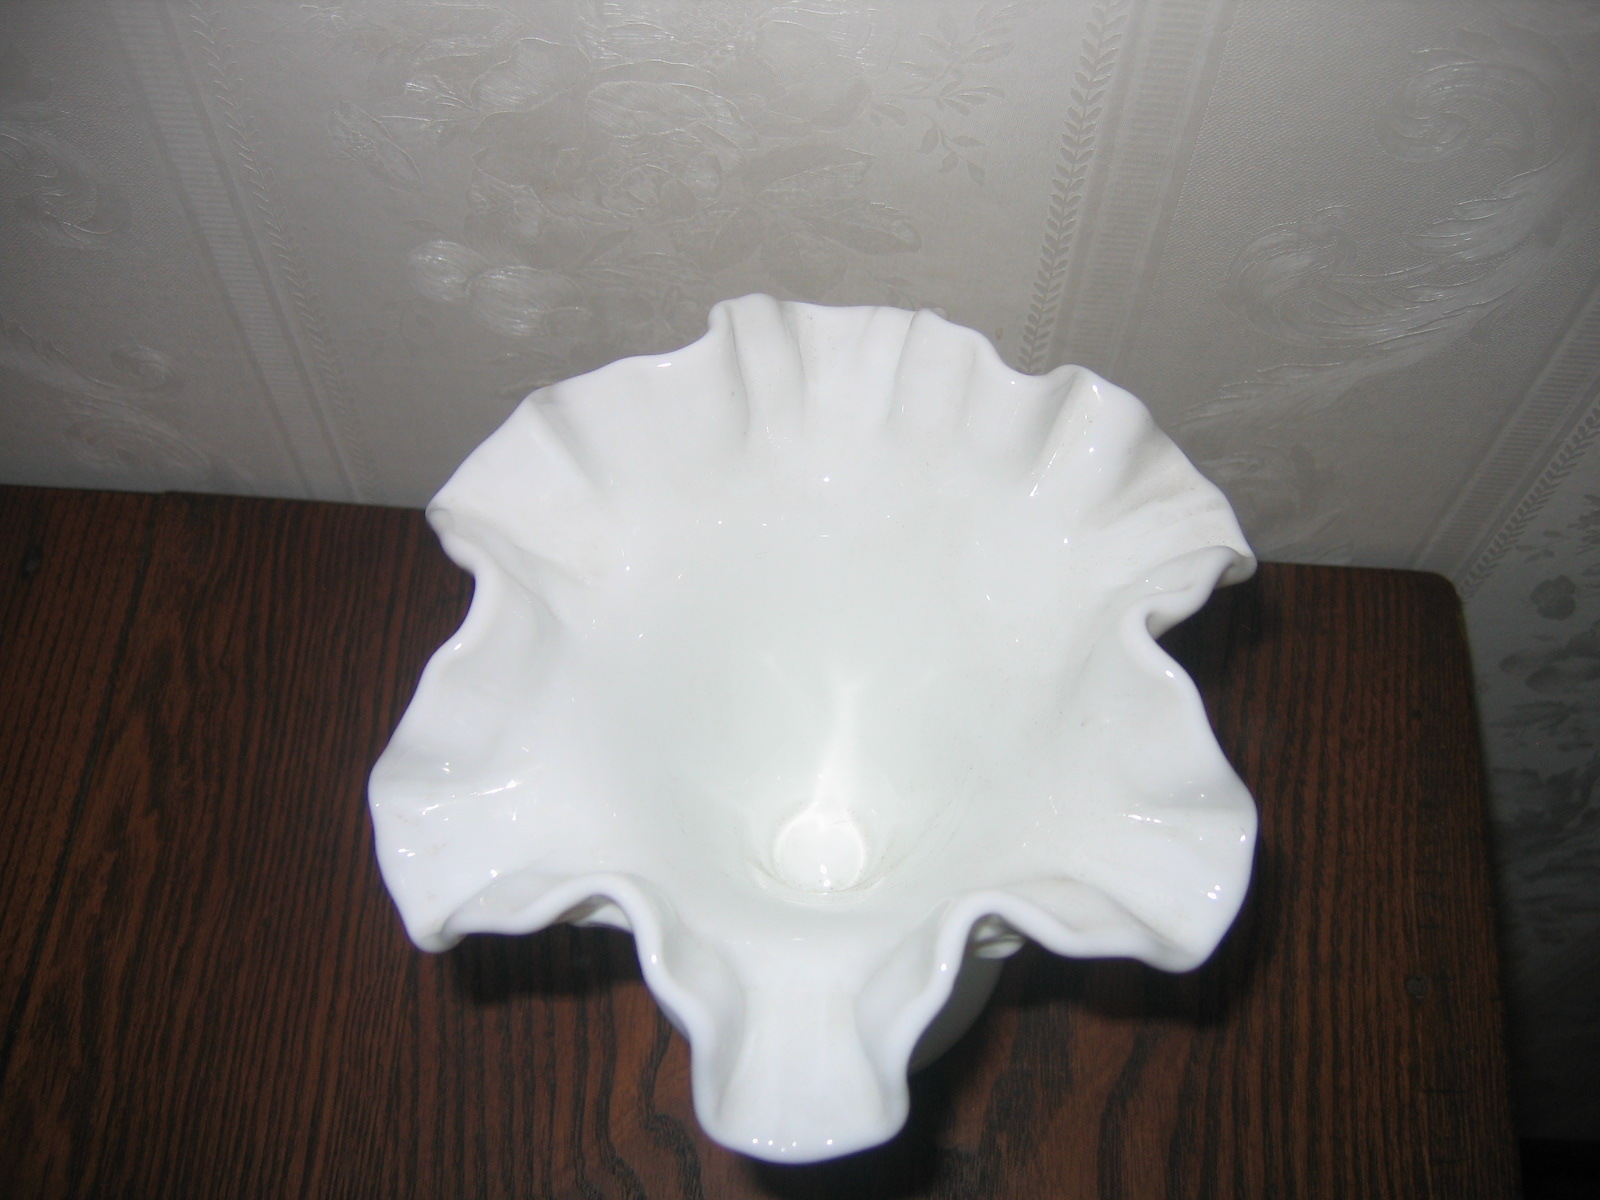 Vintage Fenton Milk Glass Hobnail Vase Ruffle Edge Vase ... Vintage Ruffled Edge Glass Vases For Sale